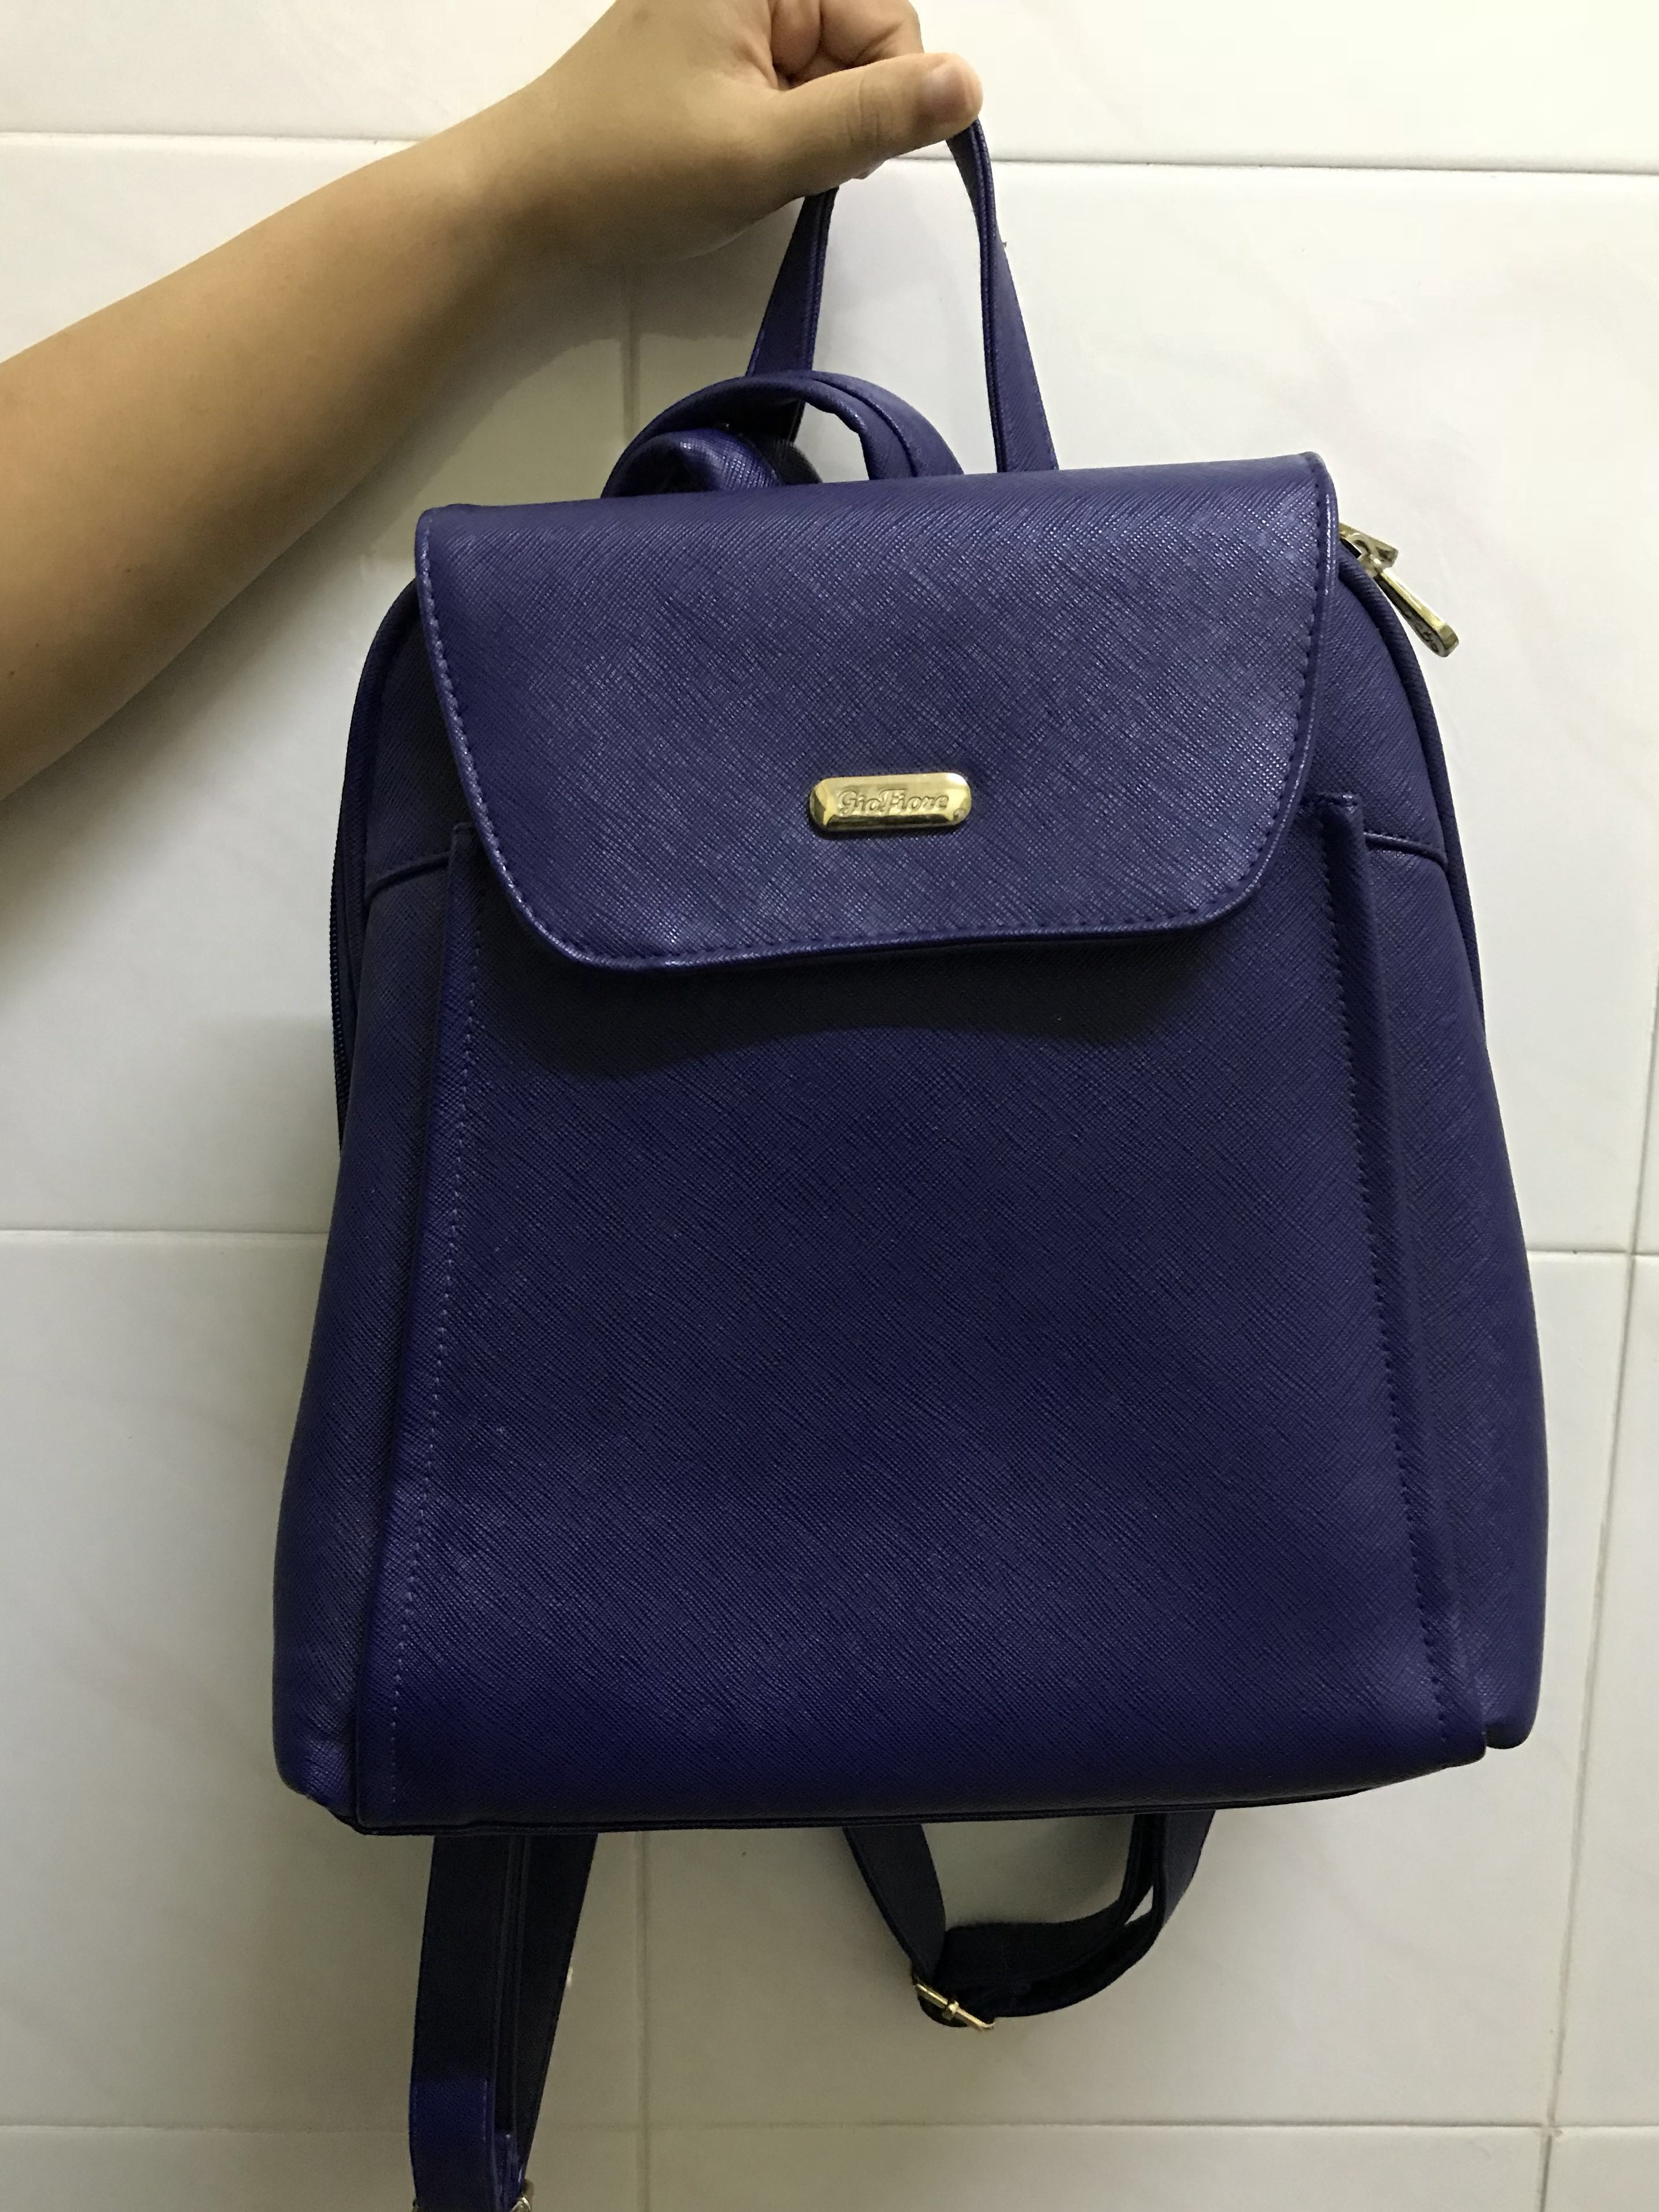 GioFiore Blue backpack